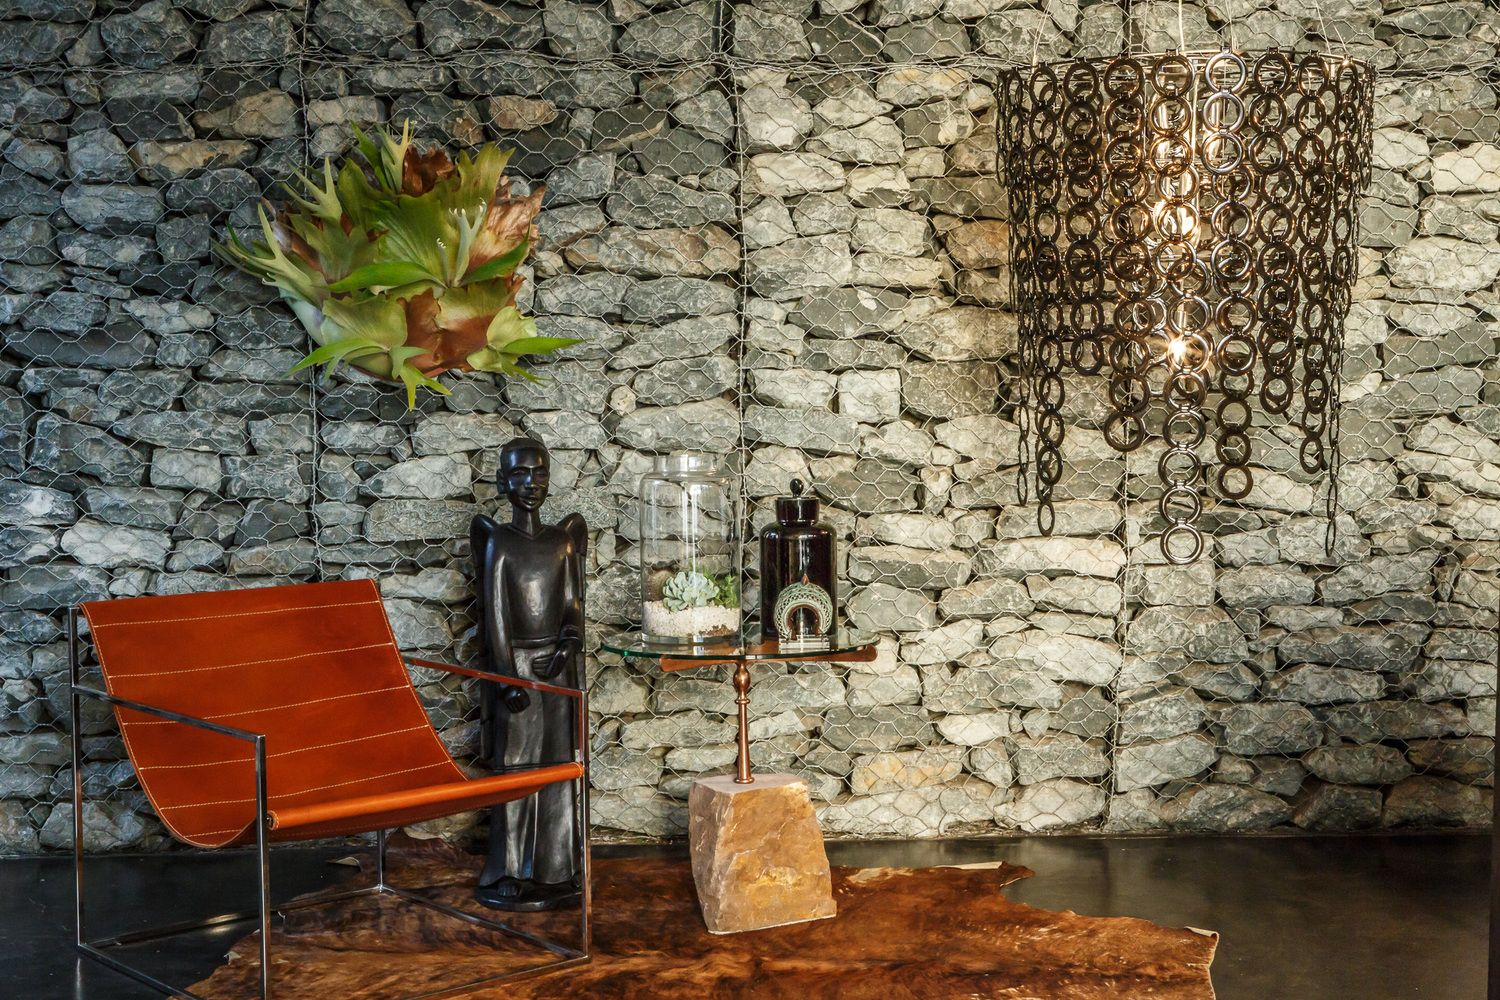 egg designs furniture. Egg Designs Furniture \u0026 Surilight Chandelier Offset Against Gabion Wall. Sling Chair Stone Side